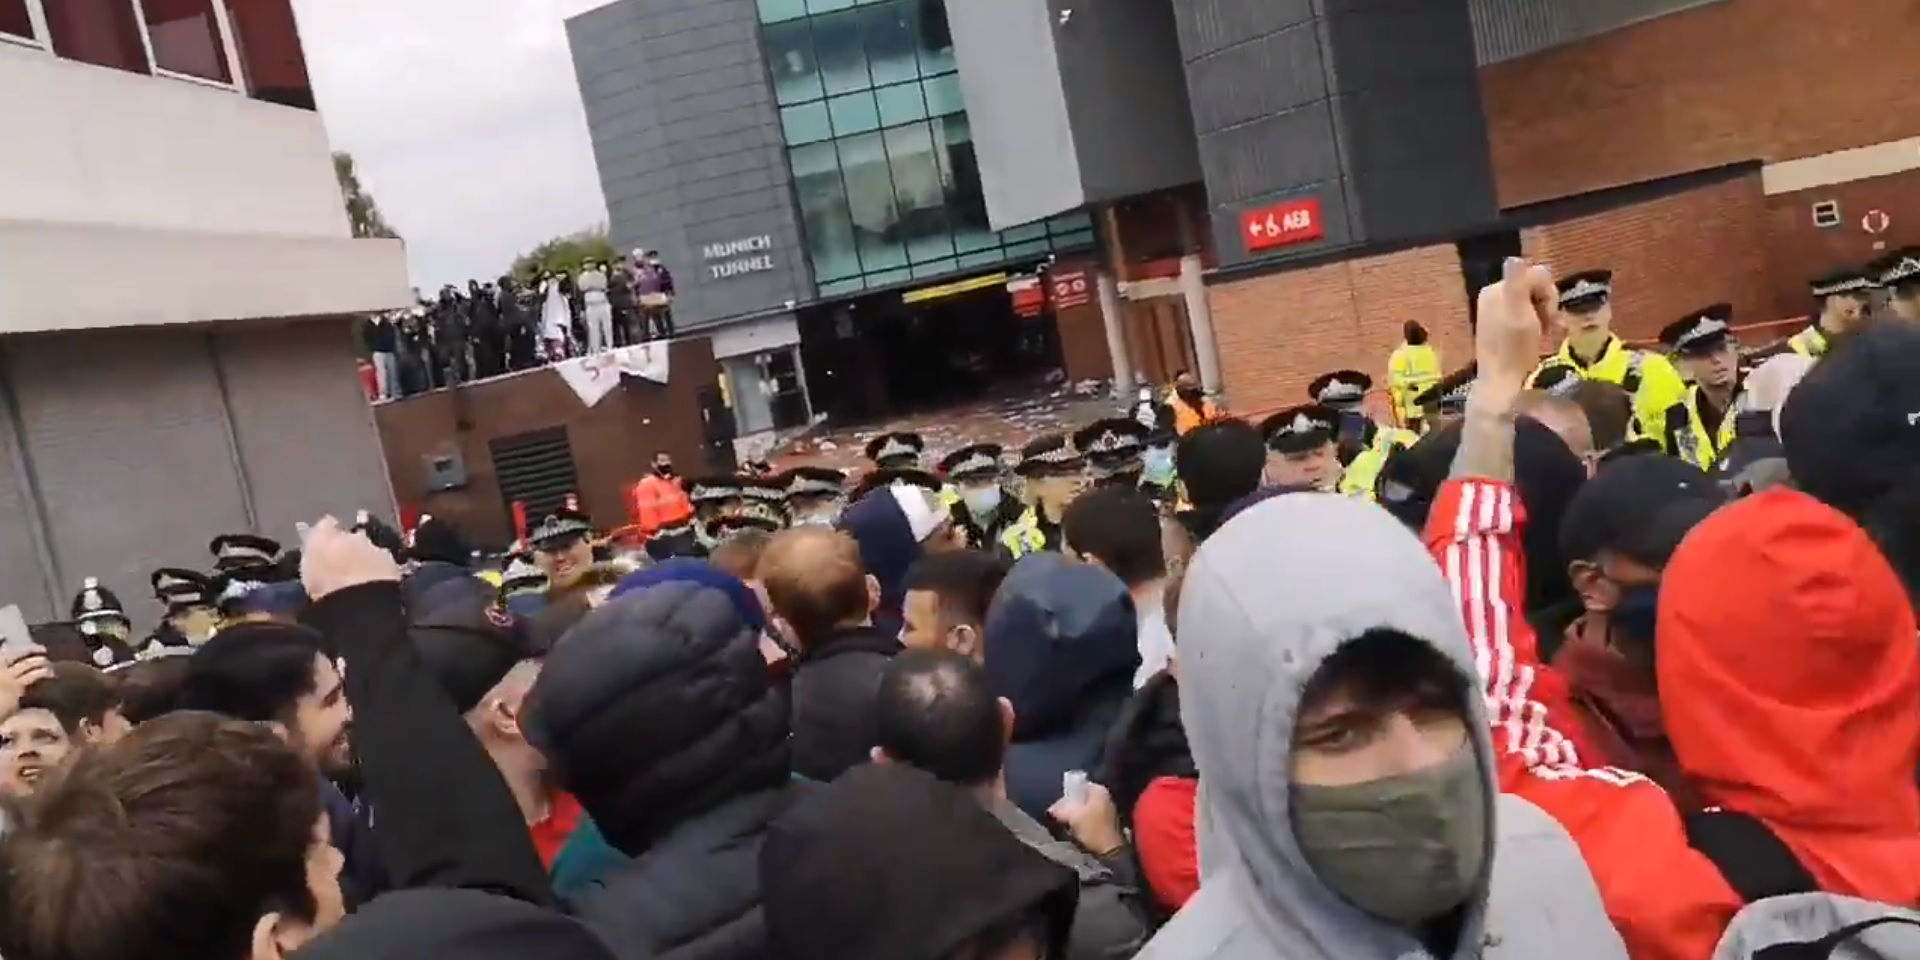 Manchester United have new date for Round 2 of protests that could affect LFC clash